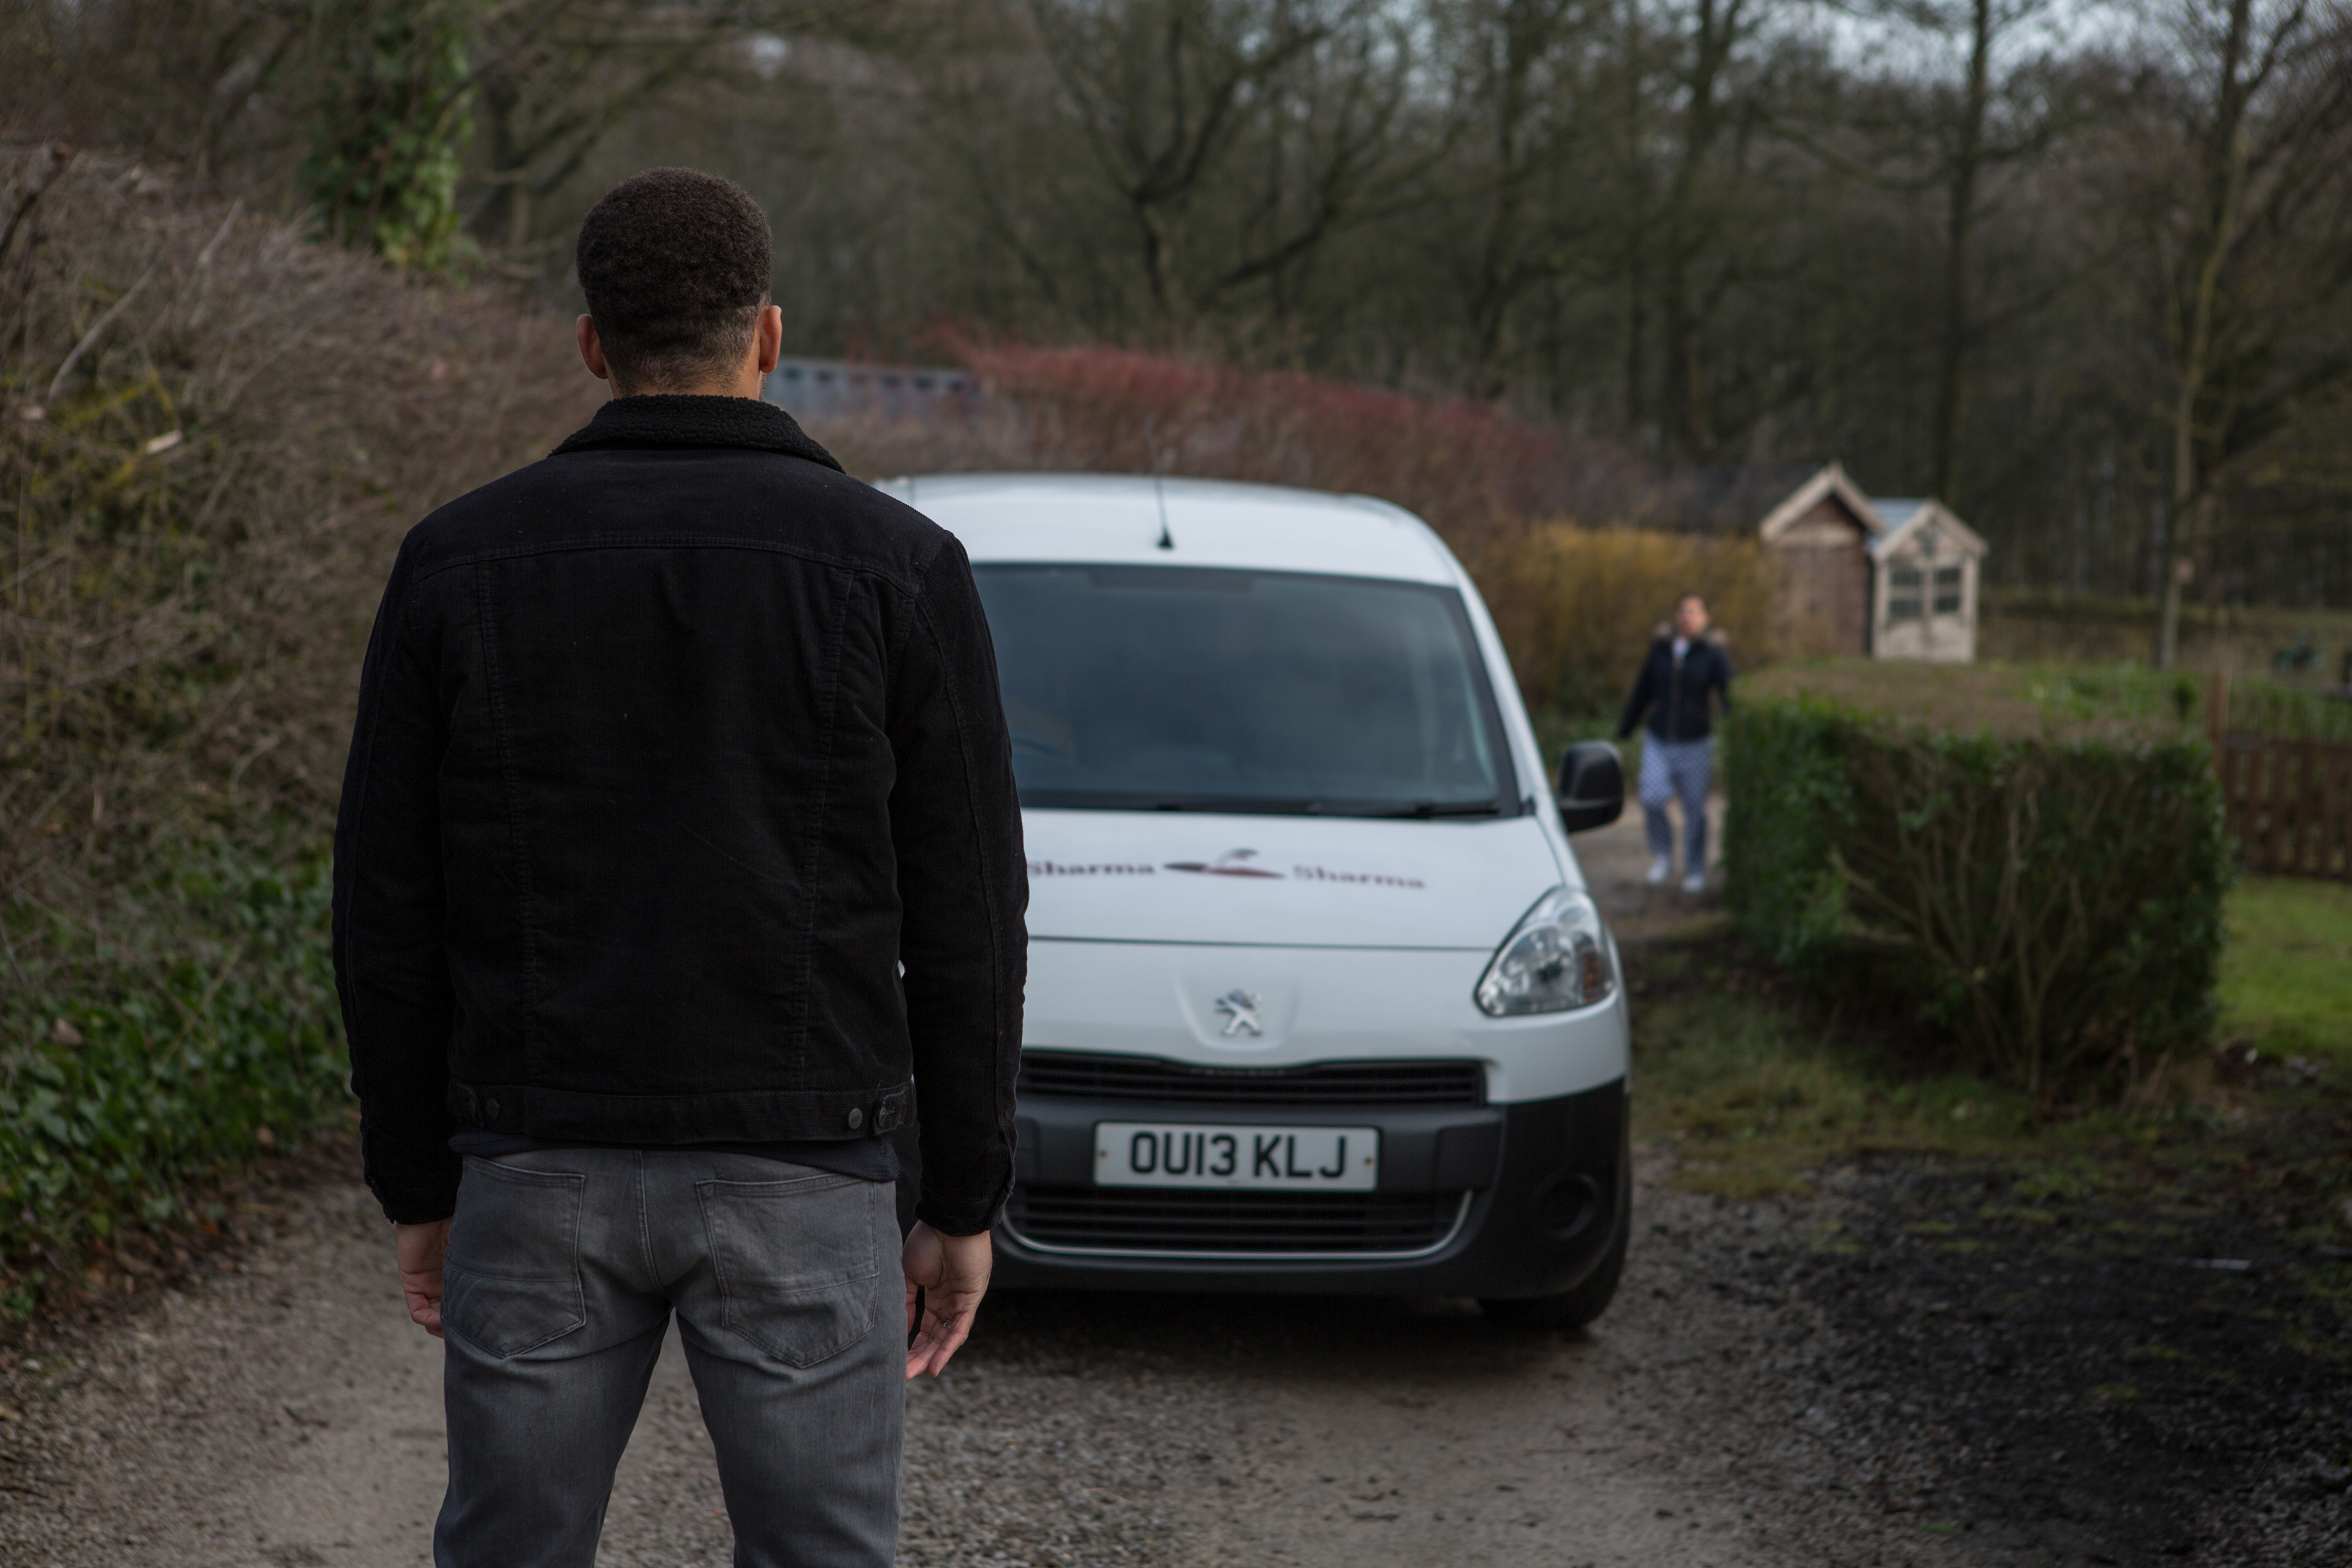 Emmerdale spoilers: Ellis Chapman tries to kill Billy Fletcher in car rage